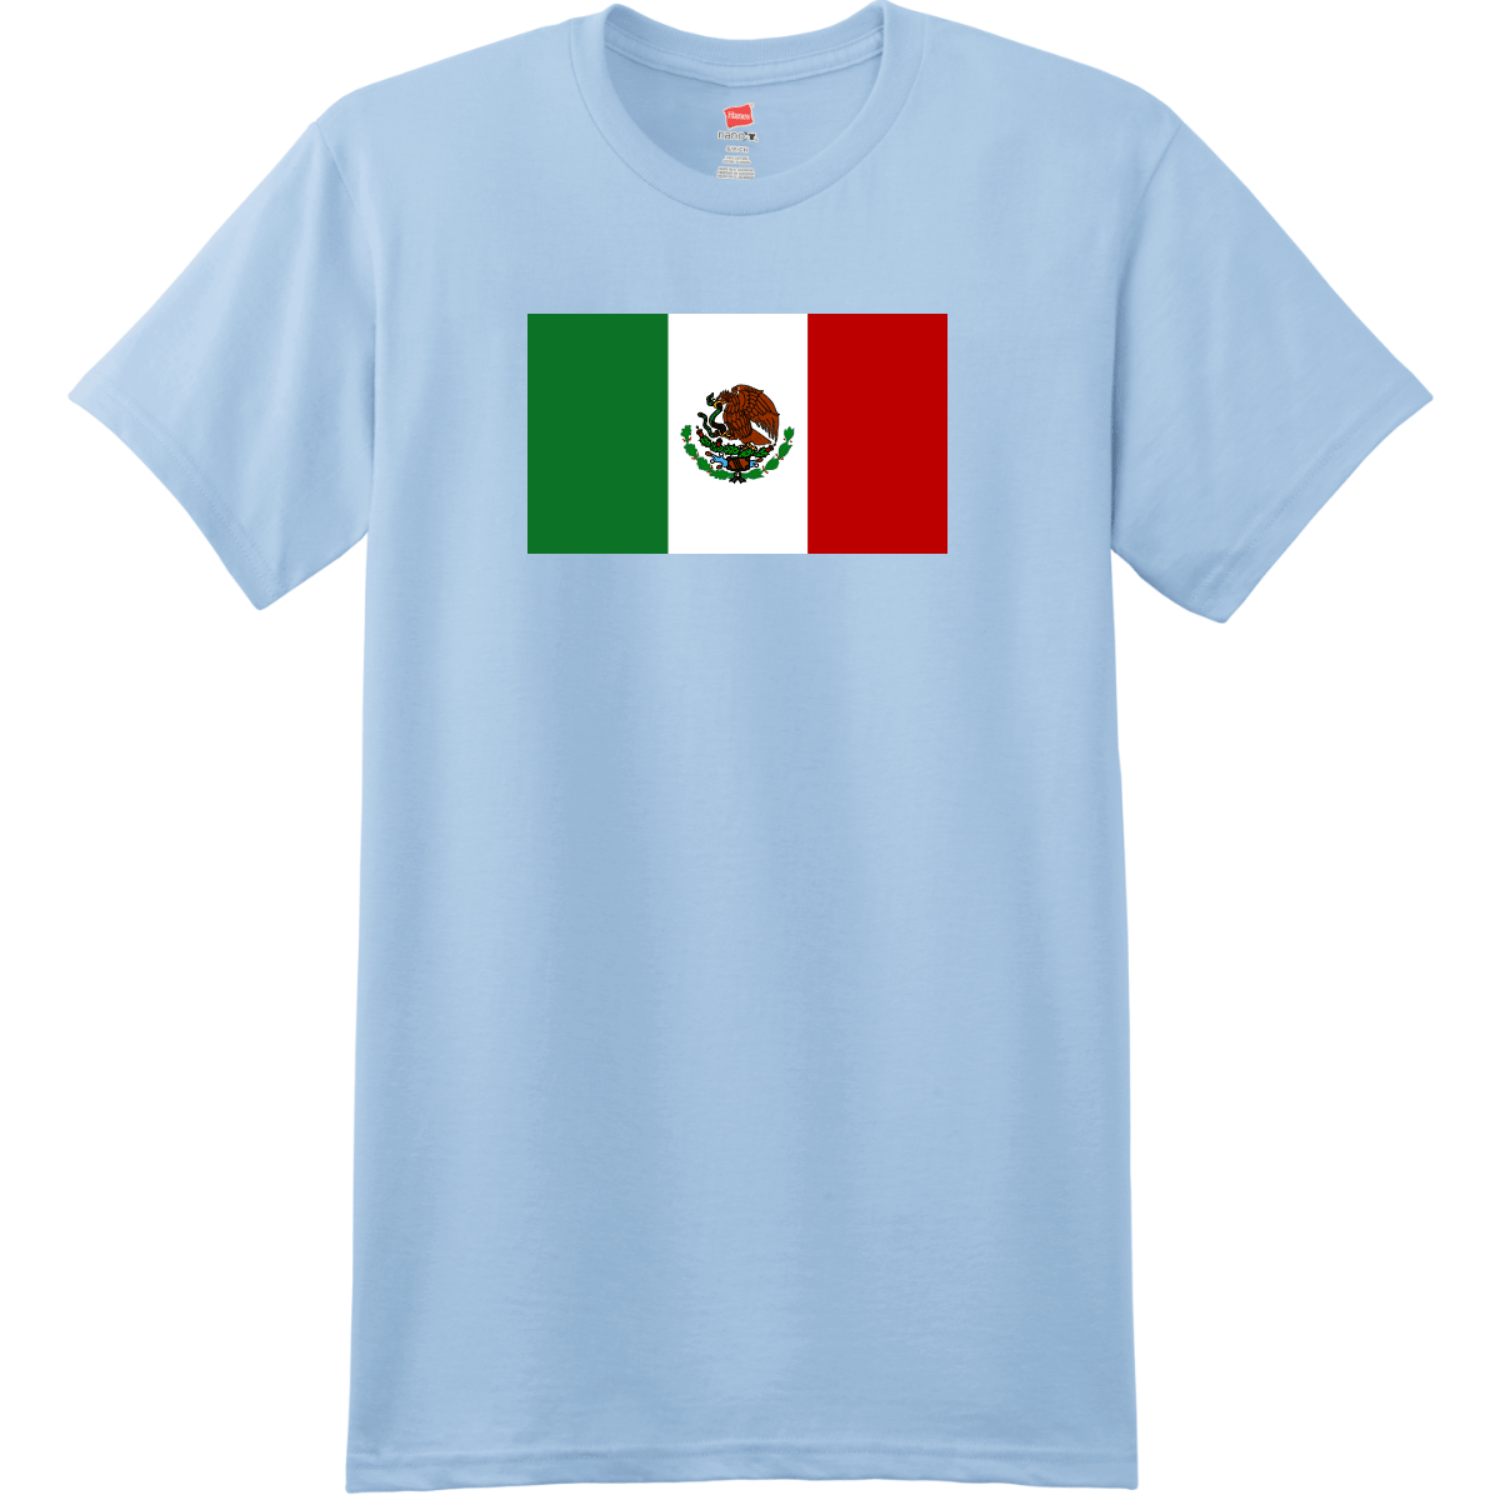 Mexico Flag T Shirt Light Blue Hanes Nano 4980 Ringspun Cotton T Shirt